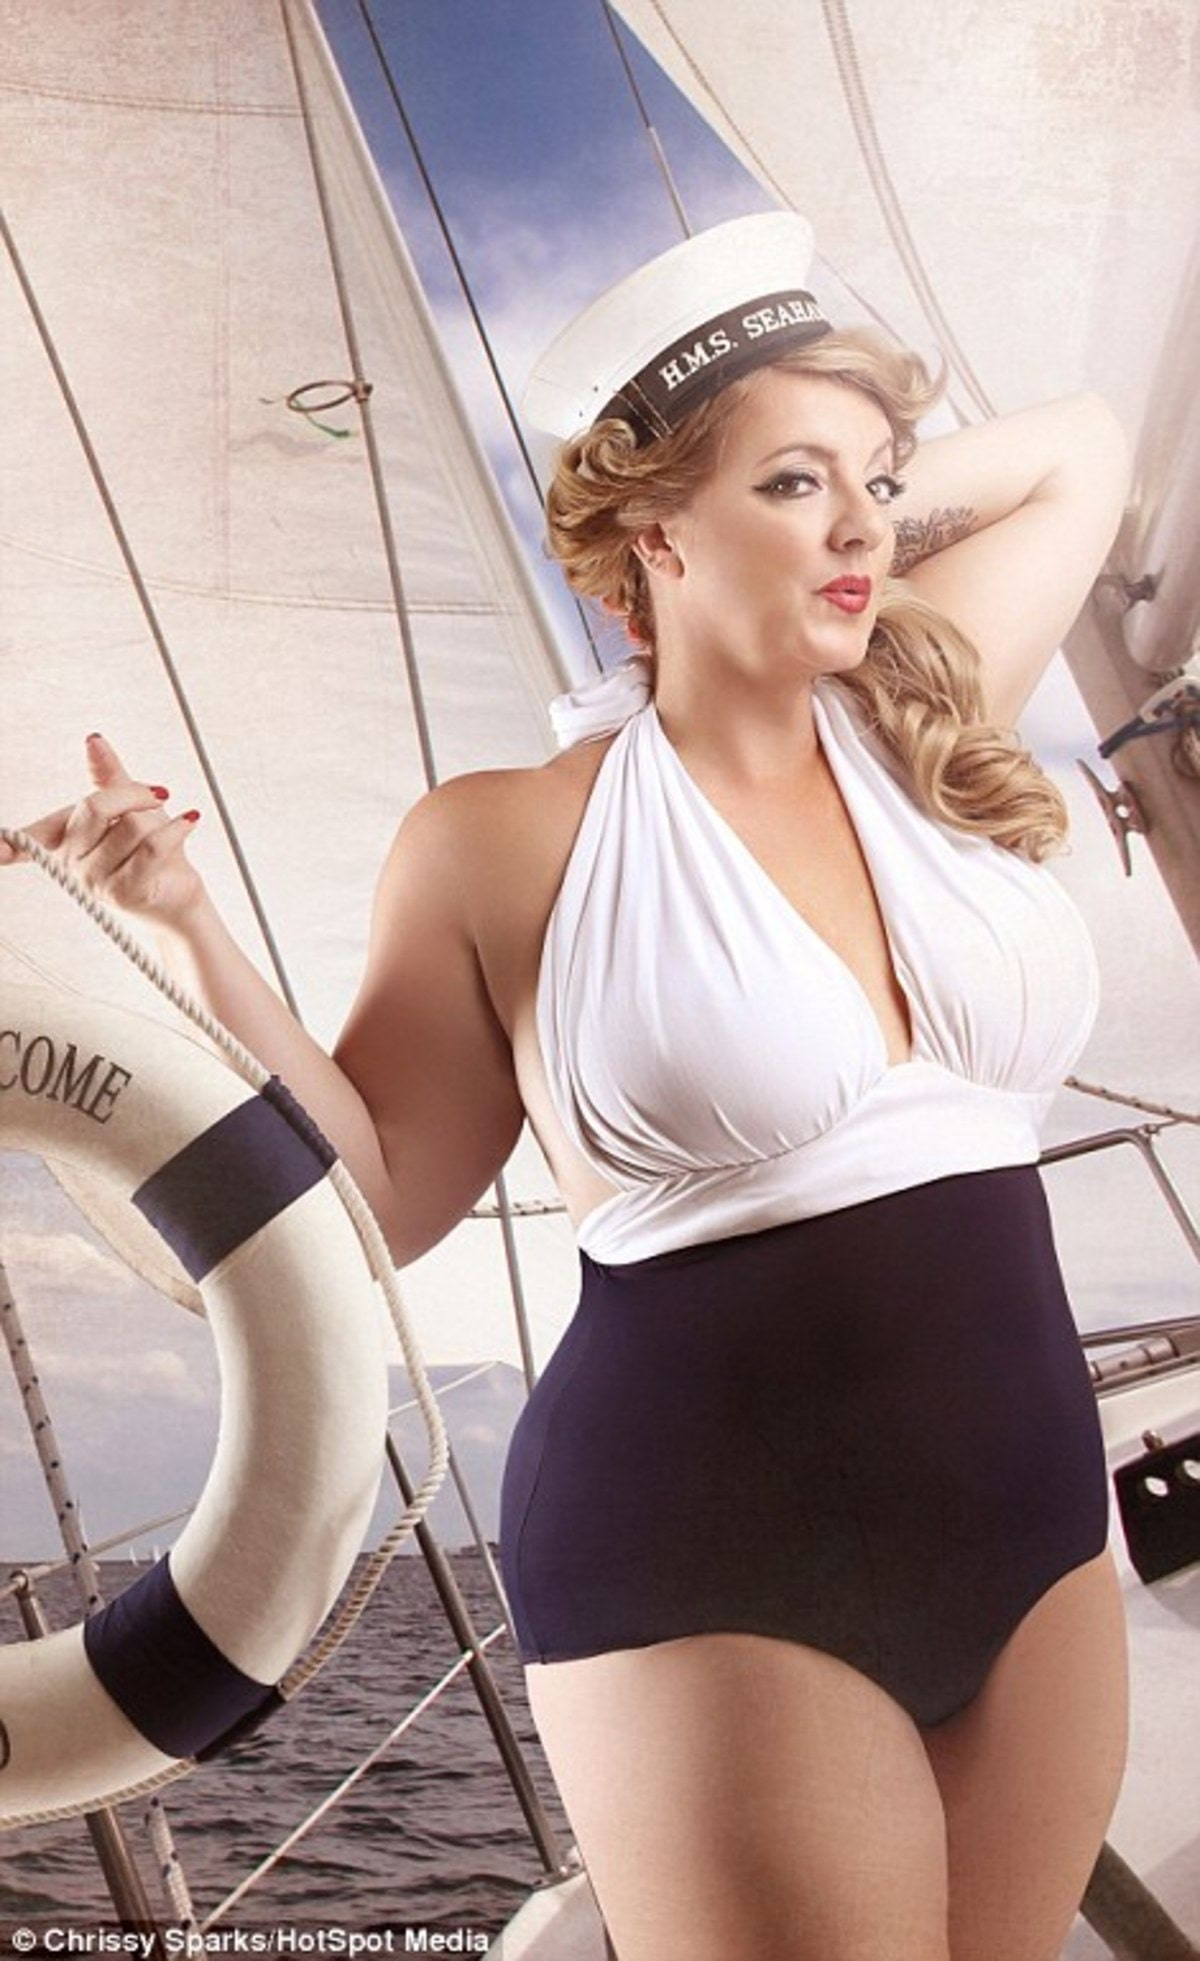 3A43260600000578-3926872-Deb_poses_in_a_swimming_costume_and_sailor_hat_after_her_transfo-a-47_1478862946496